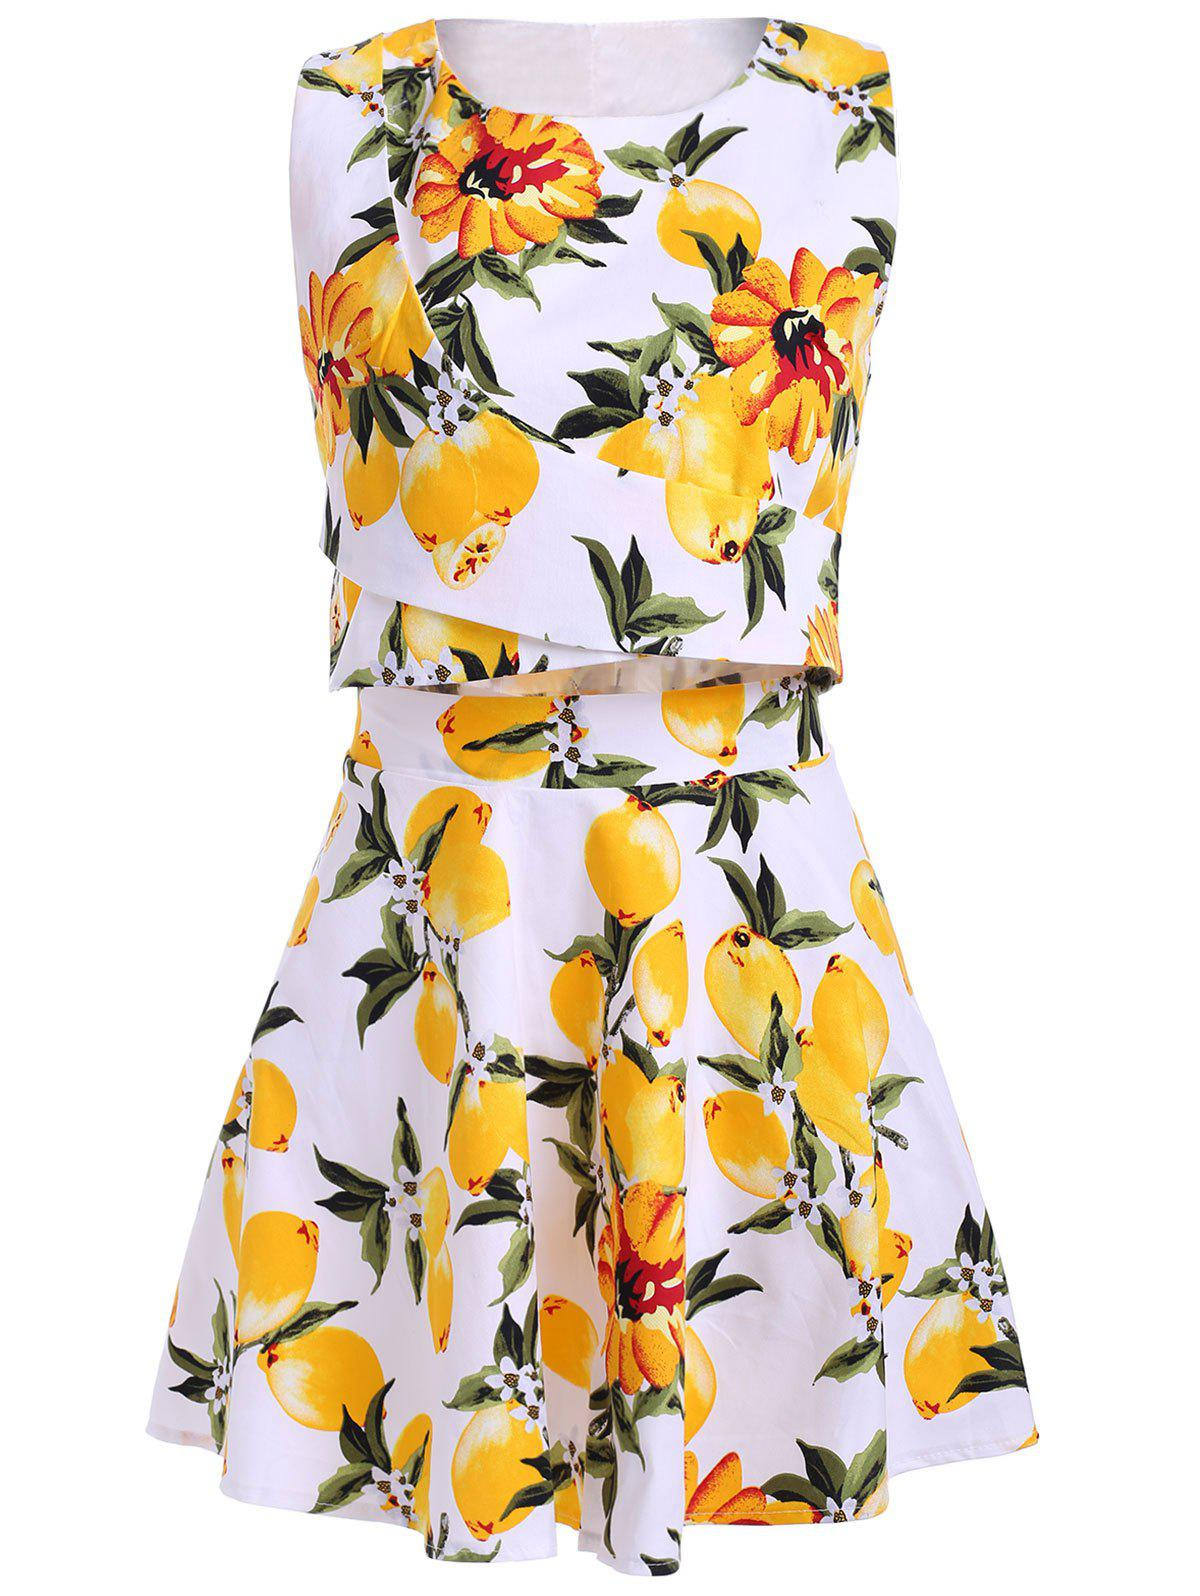 Trendy Jewel Neck Sleeveless Floral Print Two Piece Dress For Women - WHITE ONE SIZE(FIT SIZE XS TO M)